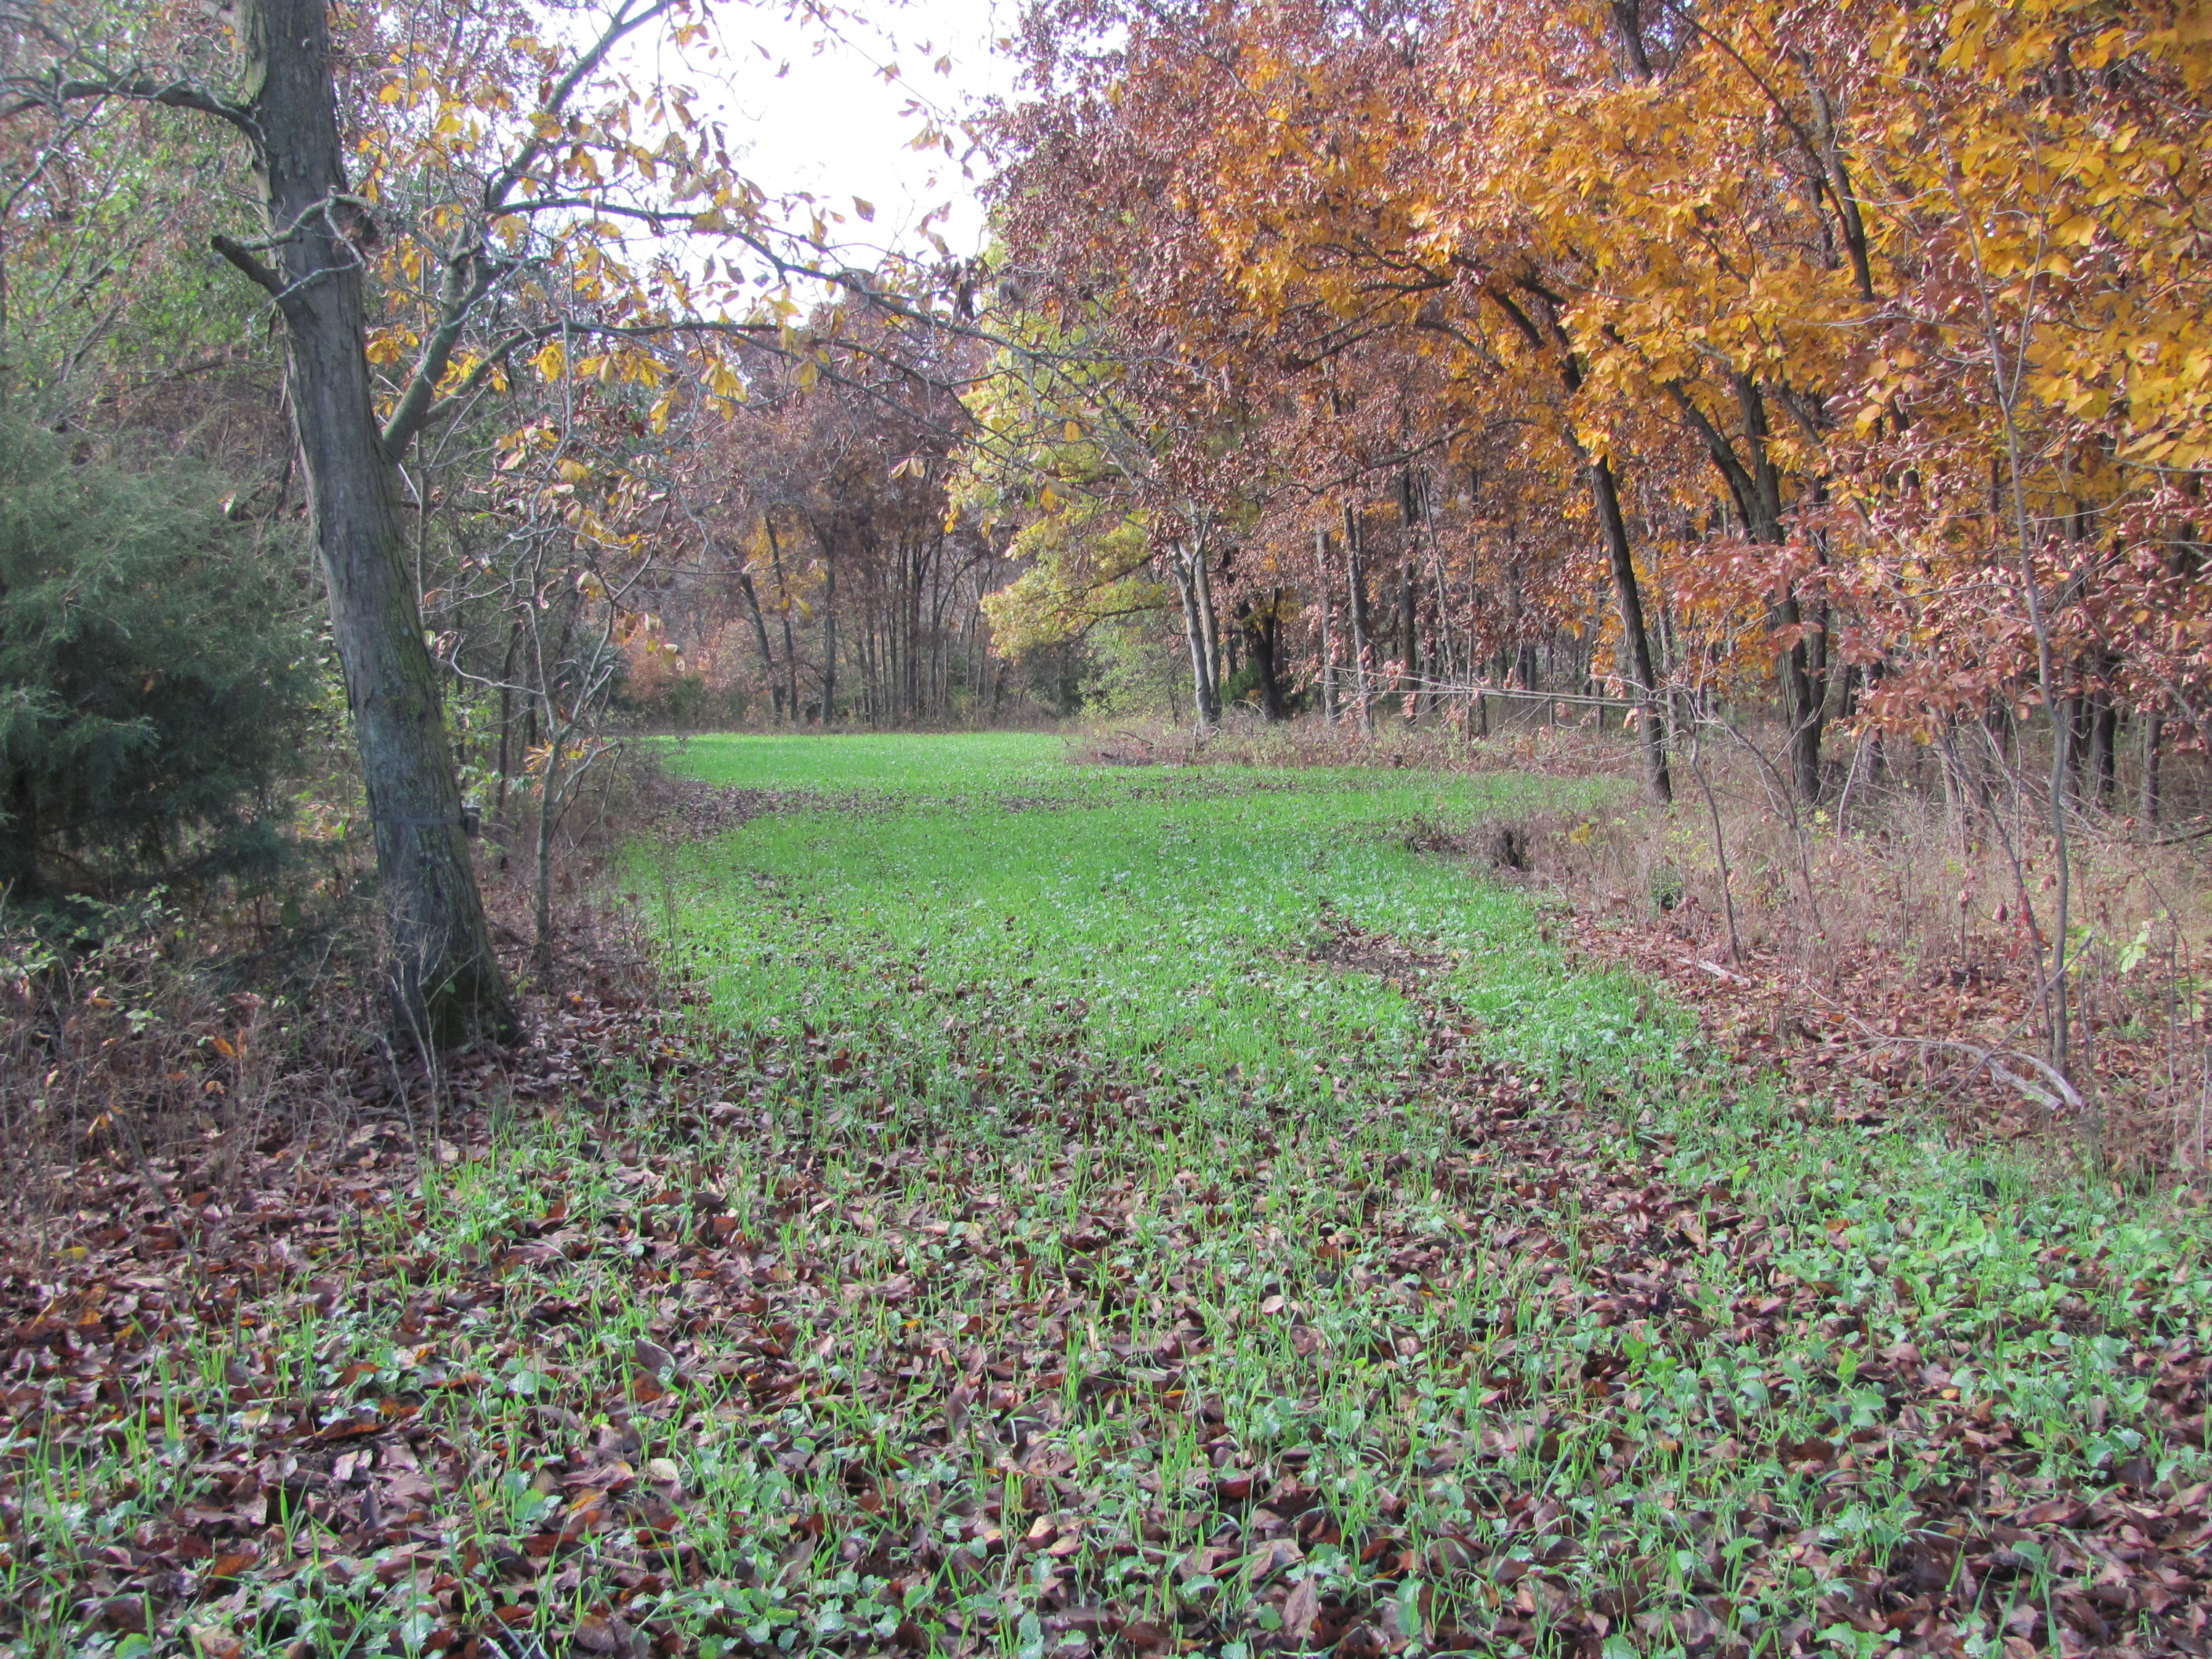 This narrow lane leads back to an interior plot.  This interior plot is located just off of a preferred ag field.  I can get in to this spot on evening hunts without getting busted.  Bucks love to scrape and work around and in the interior plot before going out to the ag fields.